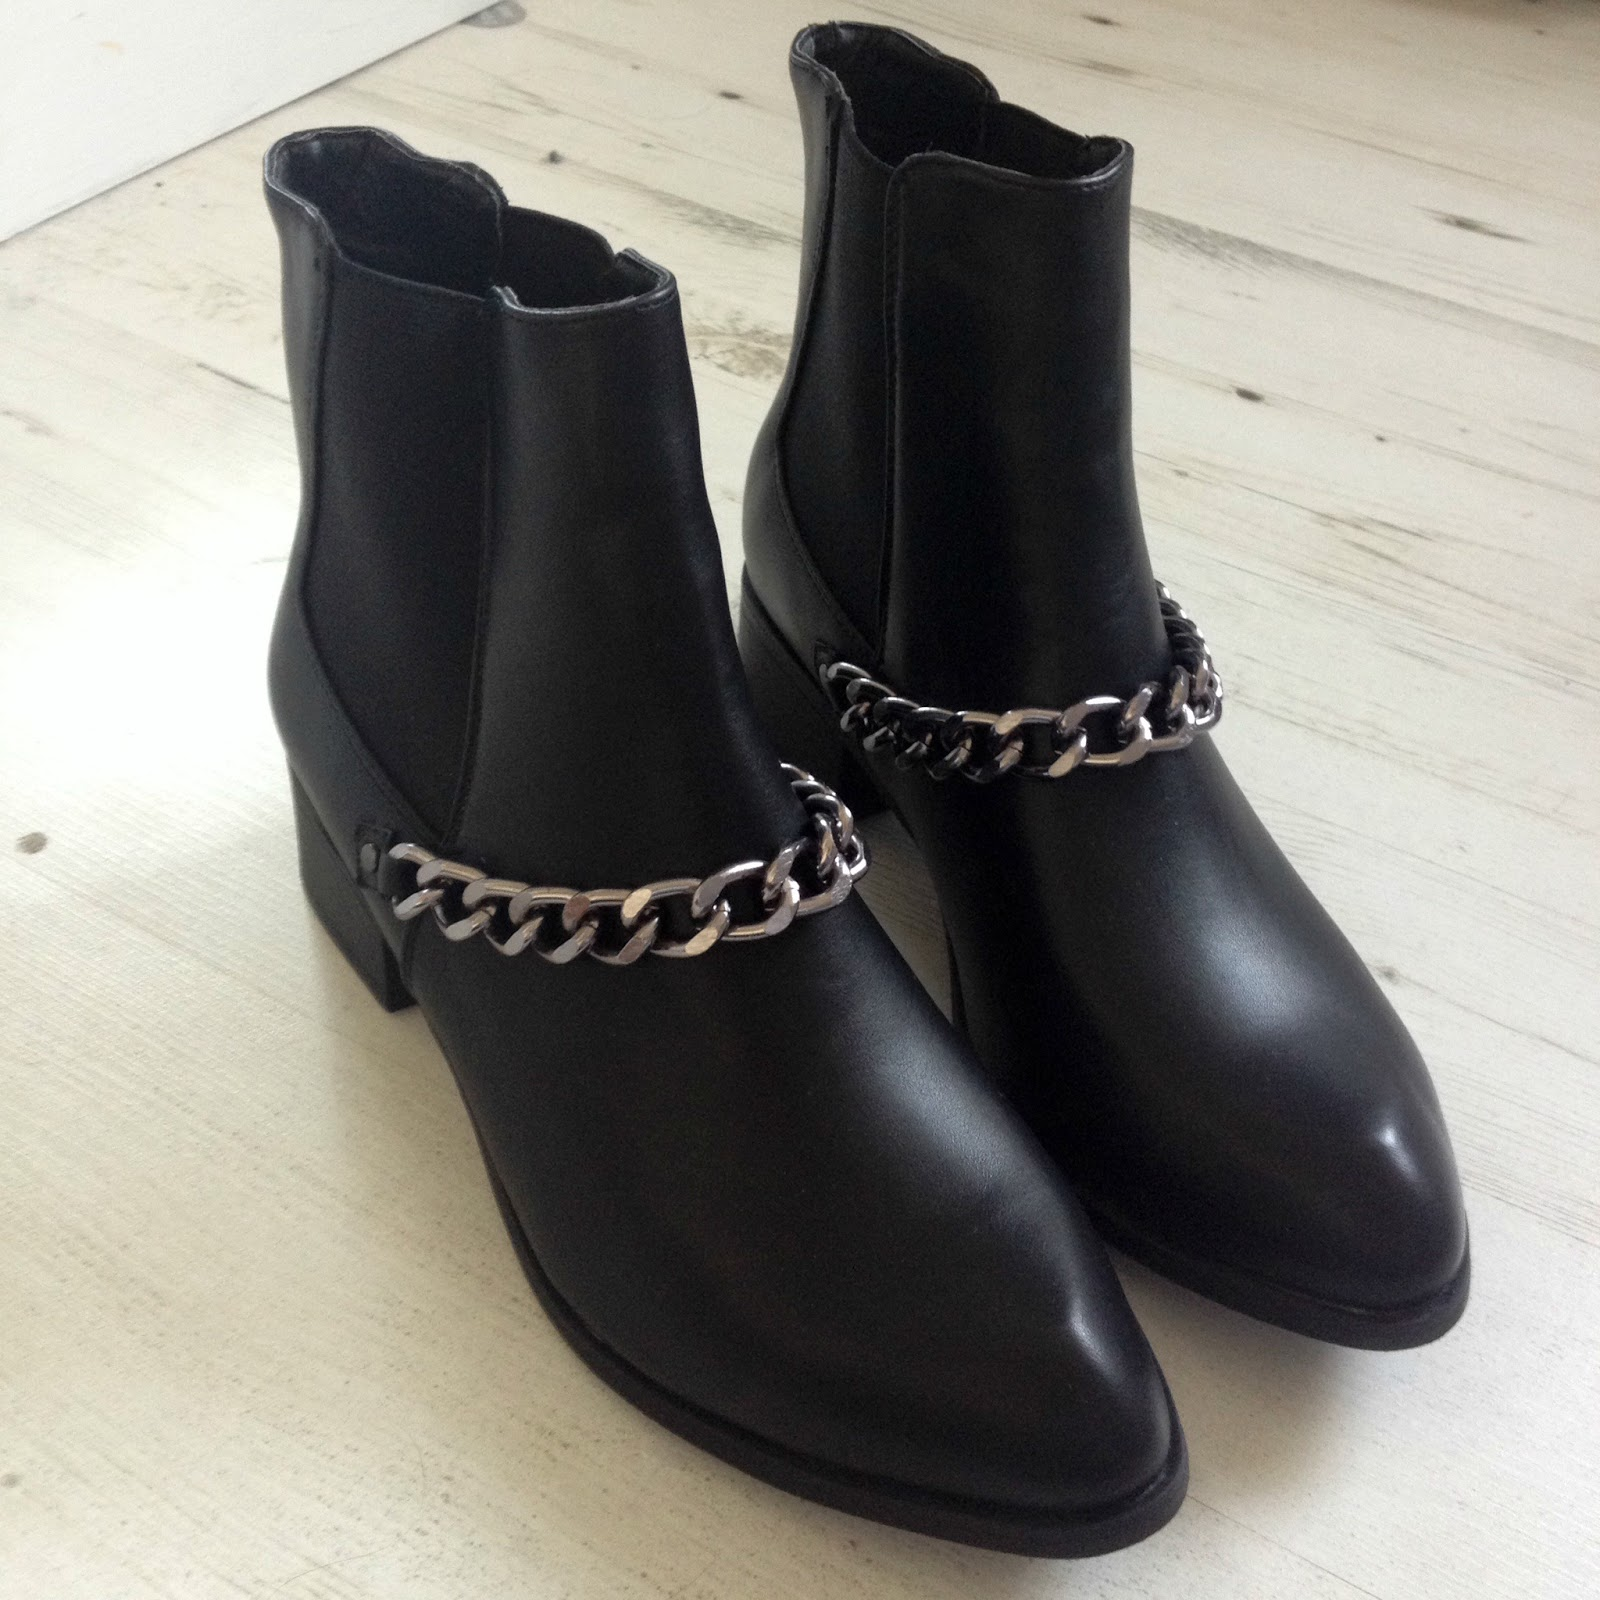 new look chain front boots review